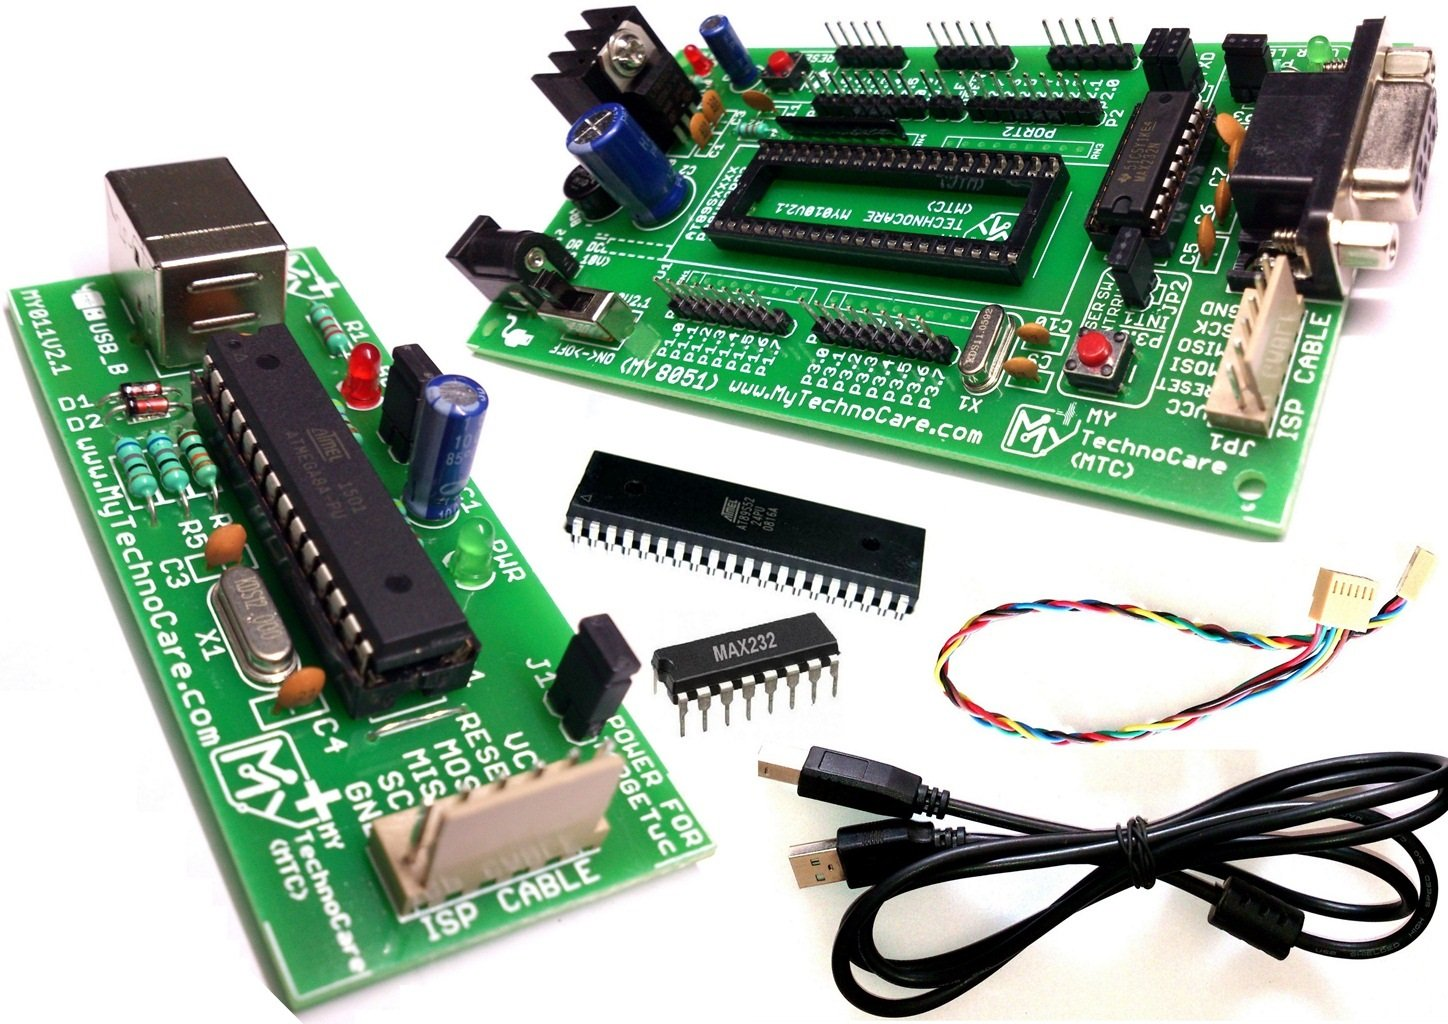 8051 Development Board With Usb Programmer My Technocare Max 232 Circuit Schematic Working Gsm Modem Pc Serial Port Programmermax232atmel At89s52 Ic Microcontroller Project Kit